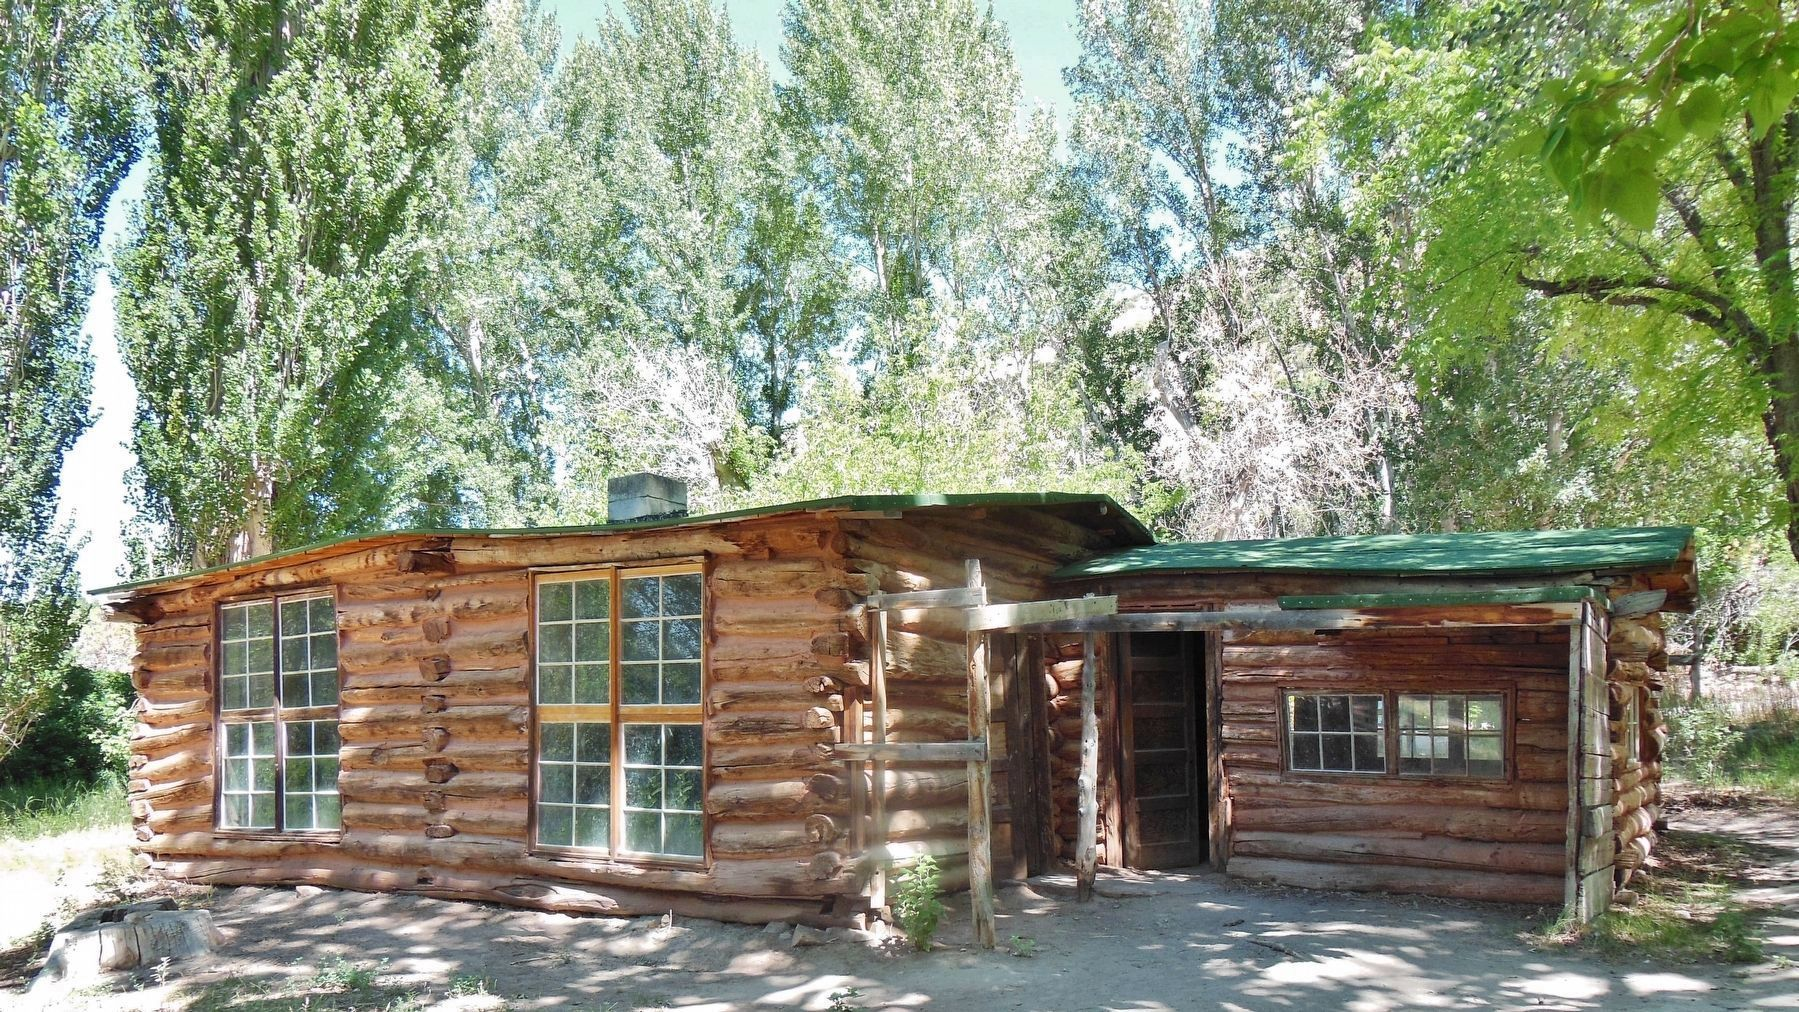 Josie Morris Homestead Cabin (<i>surrounded by the trees she planted</i>) image. Click for full size.